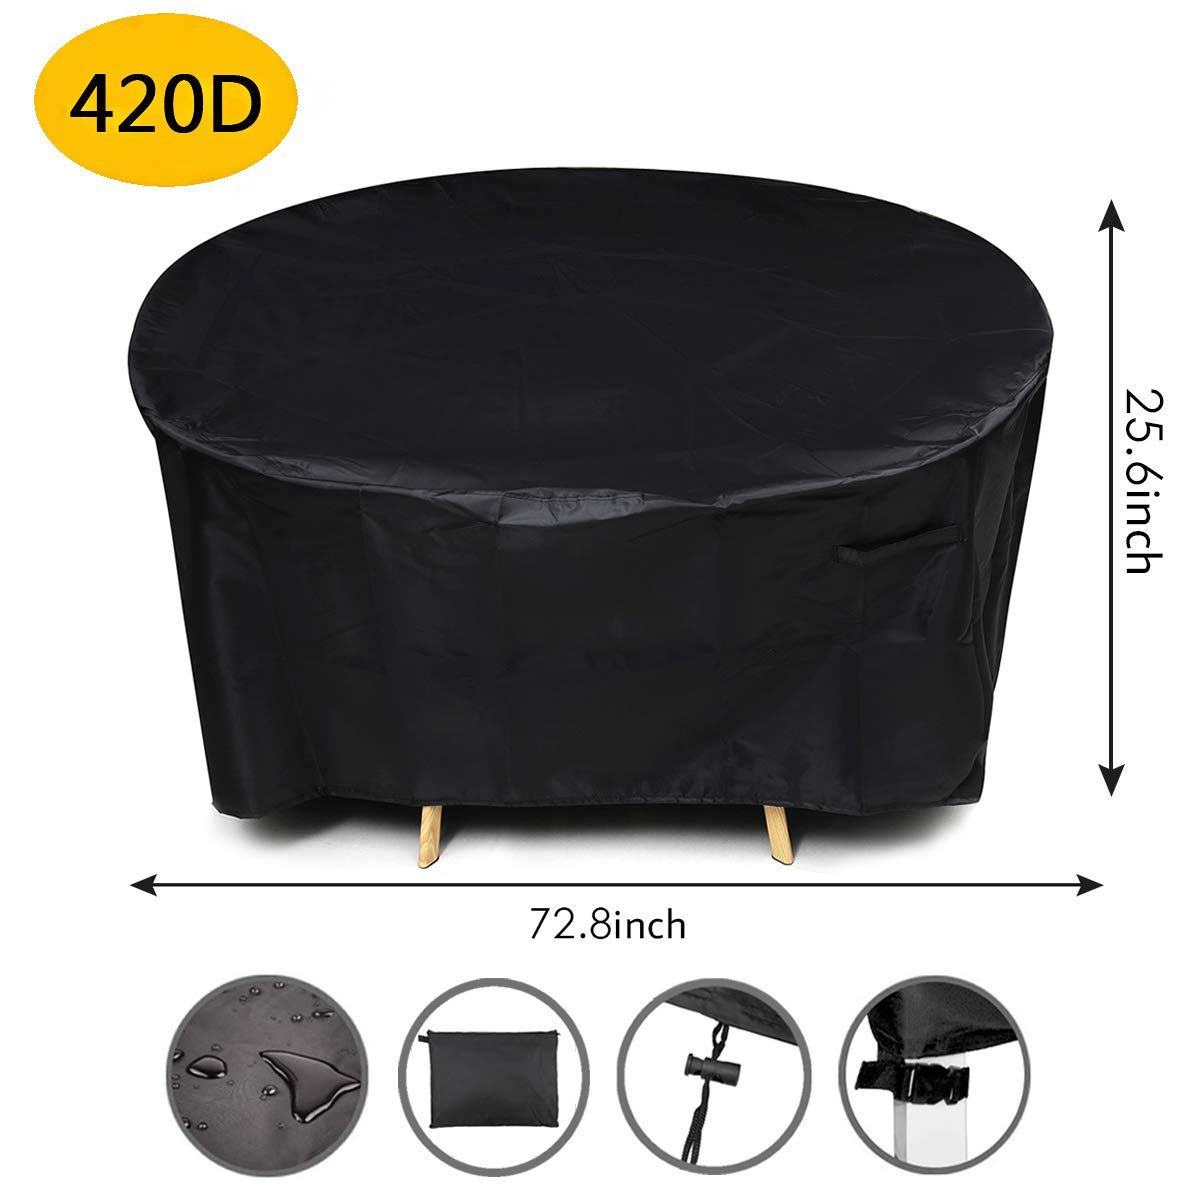 King Do Way Patio Furniture Cover round